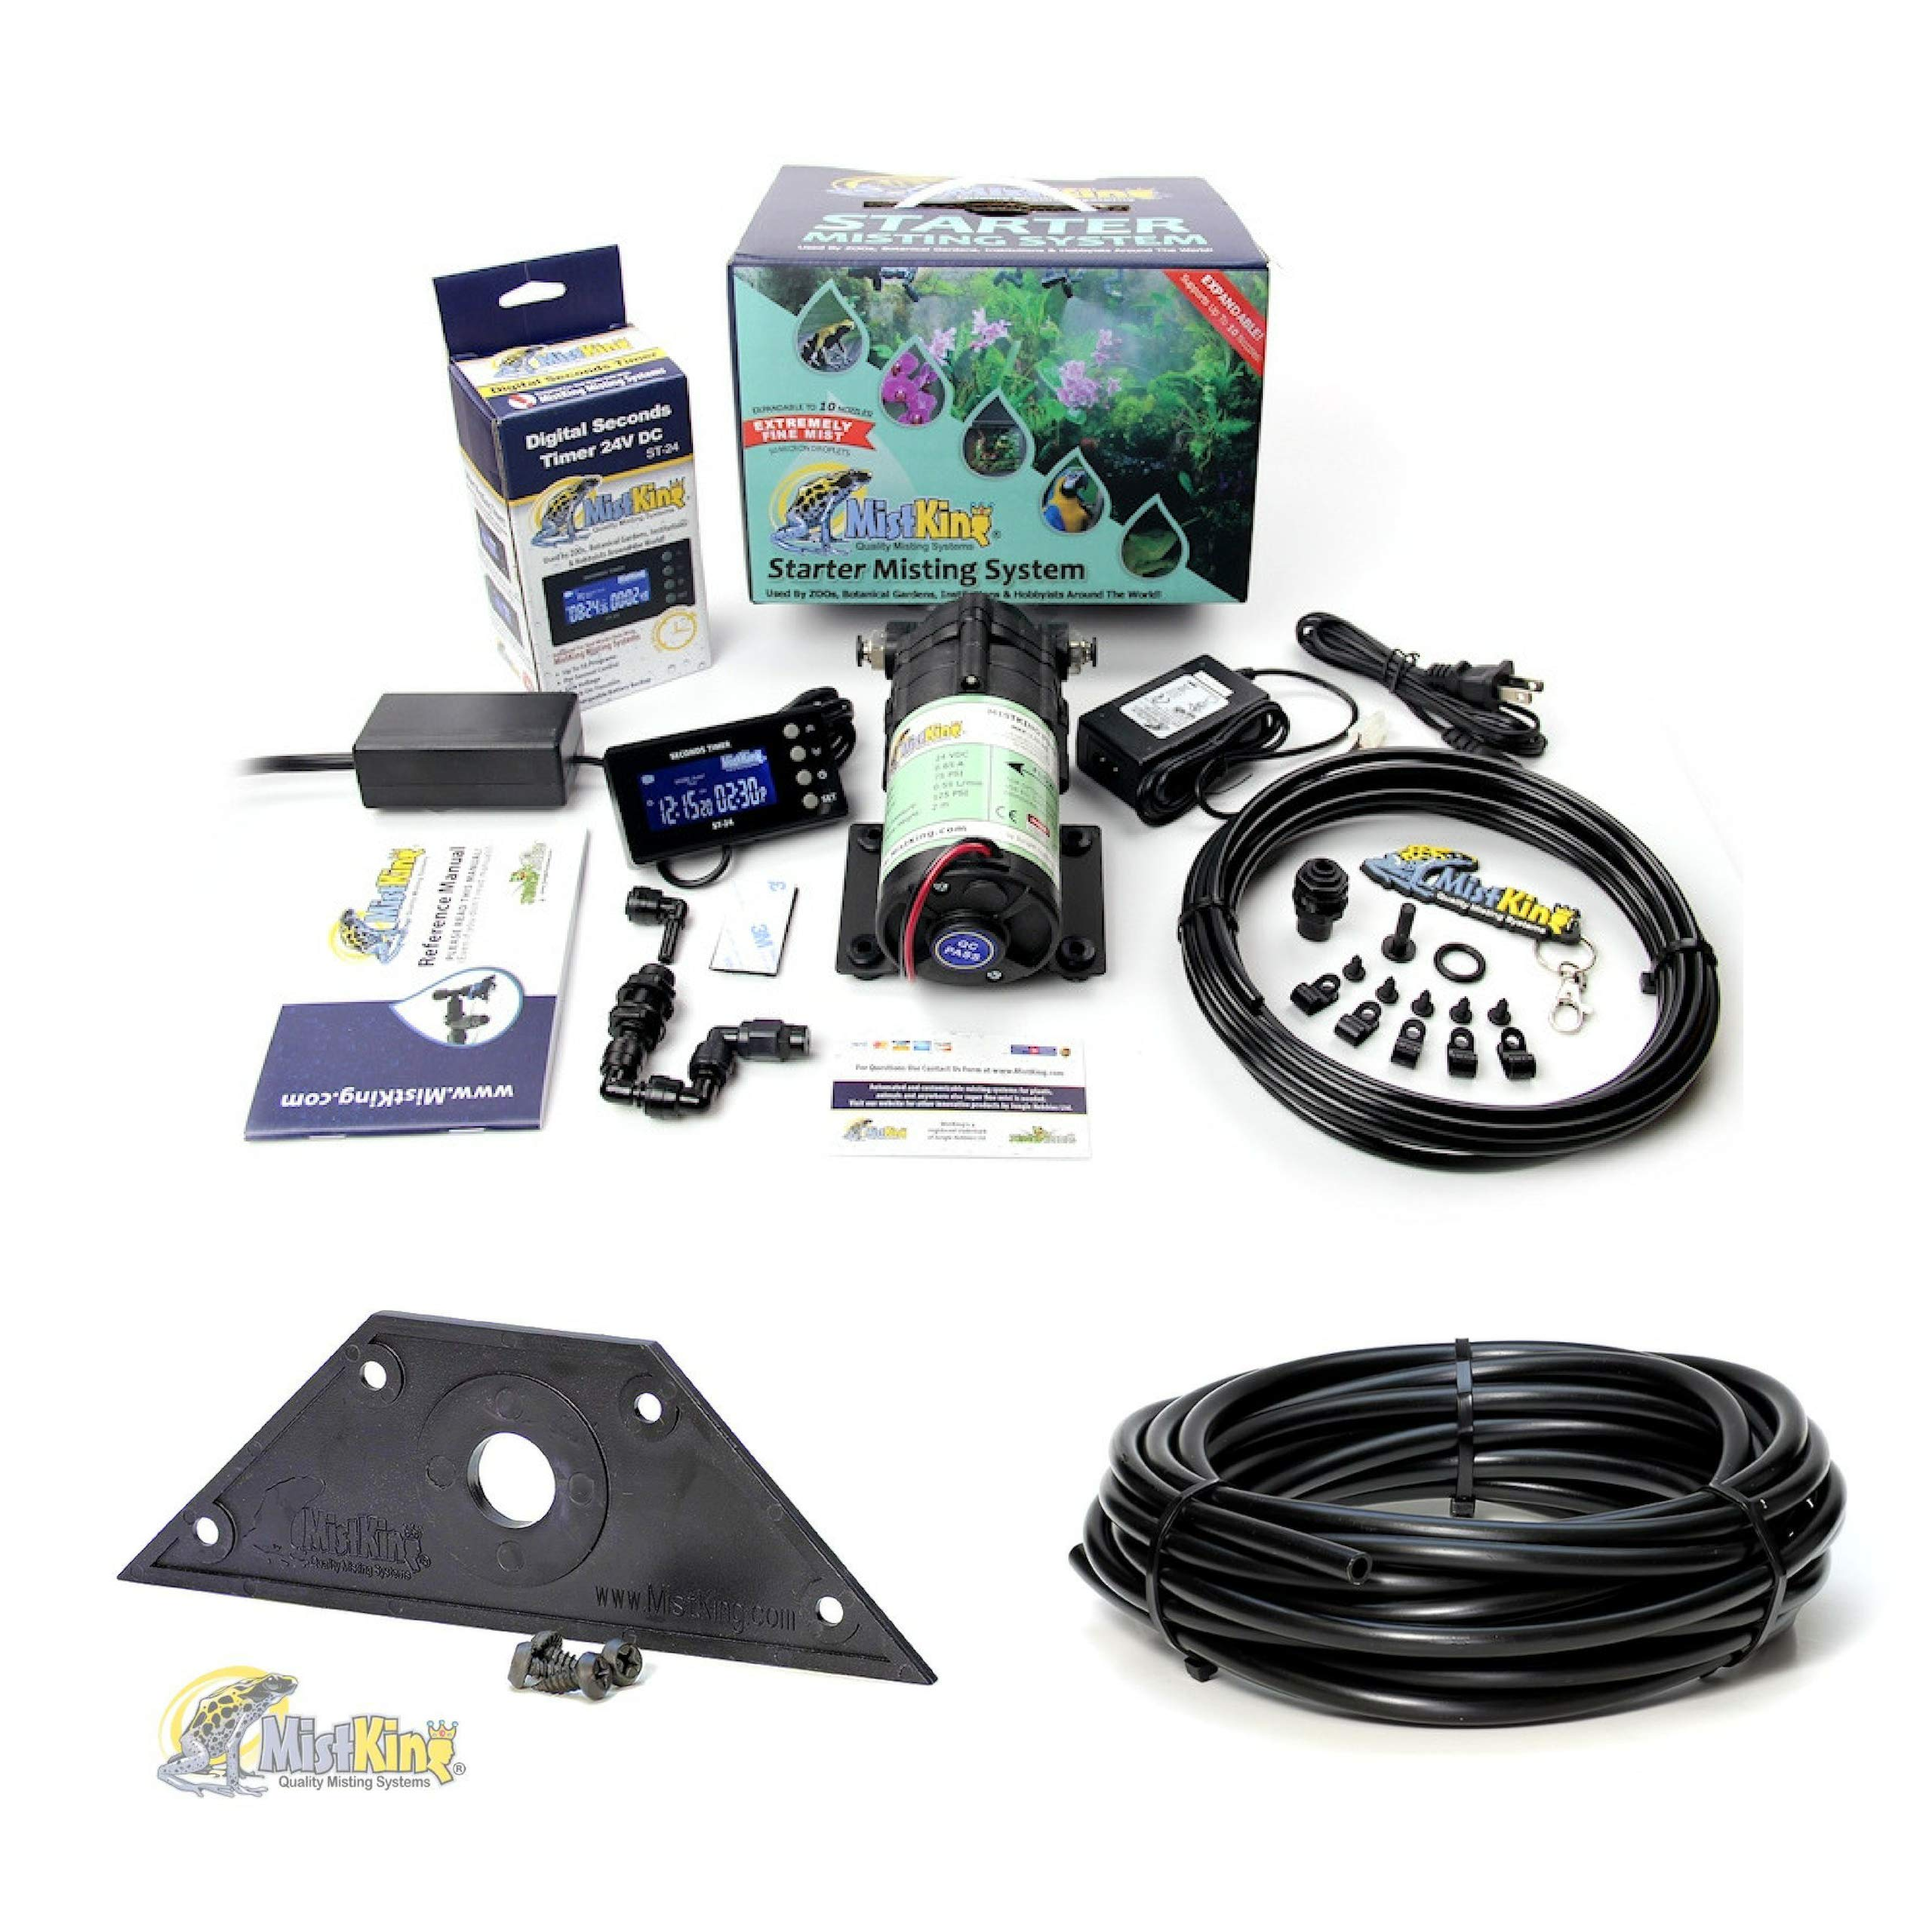 MistKing Starter Misting System Version 4.0 with Mounting Wedge and Extra 25' Tubing   Terrarium Humidifier   Terrarium Mister   Reptile Fogger   Complete Starter Misting System by MistKing